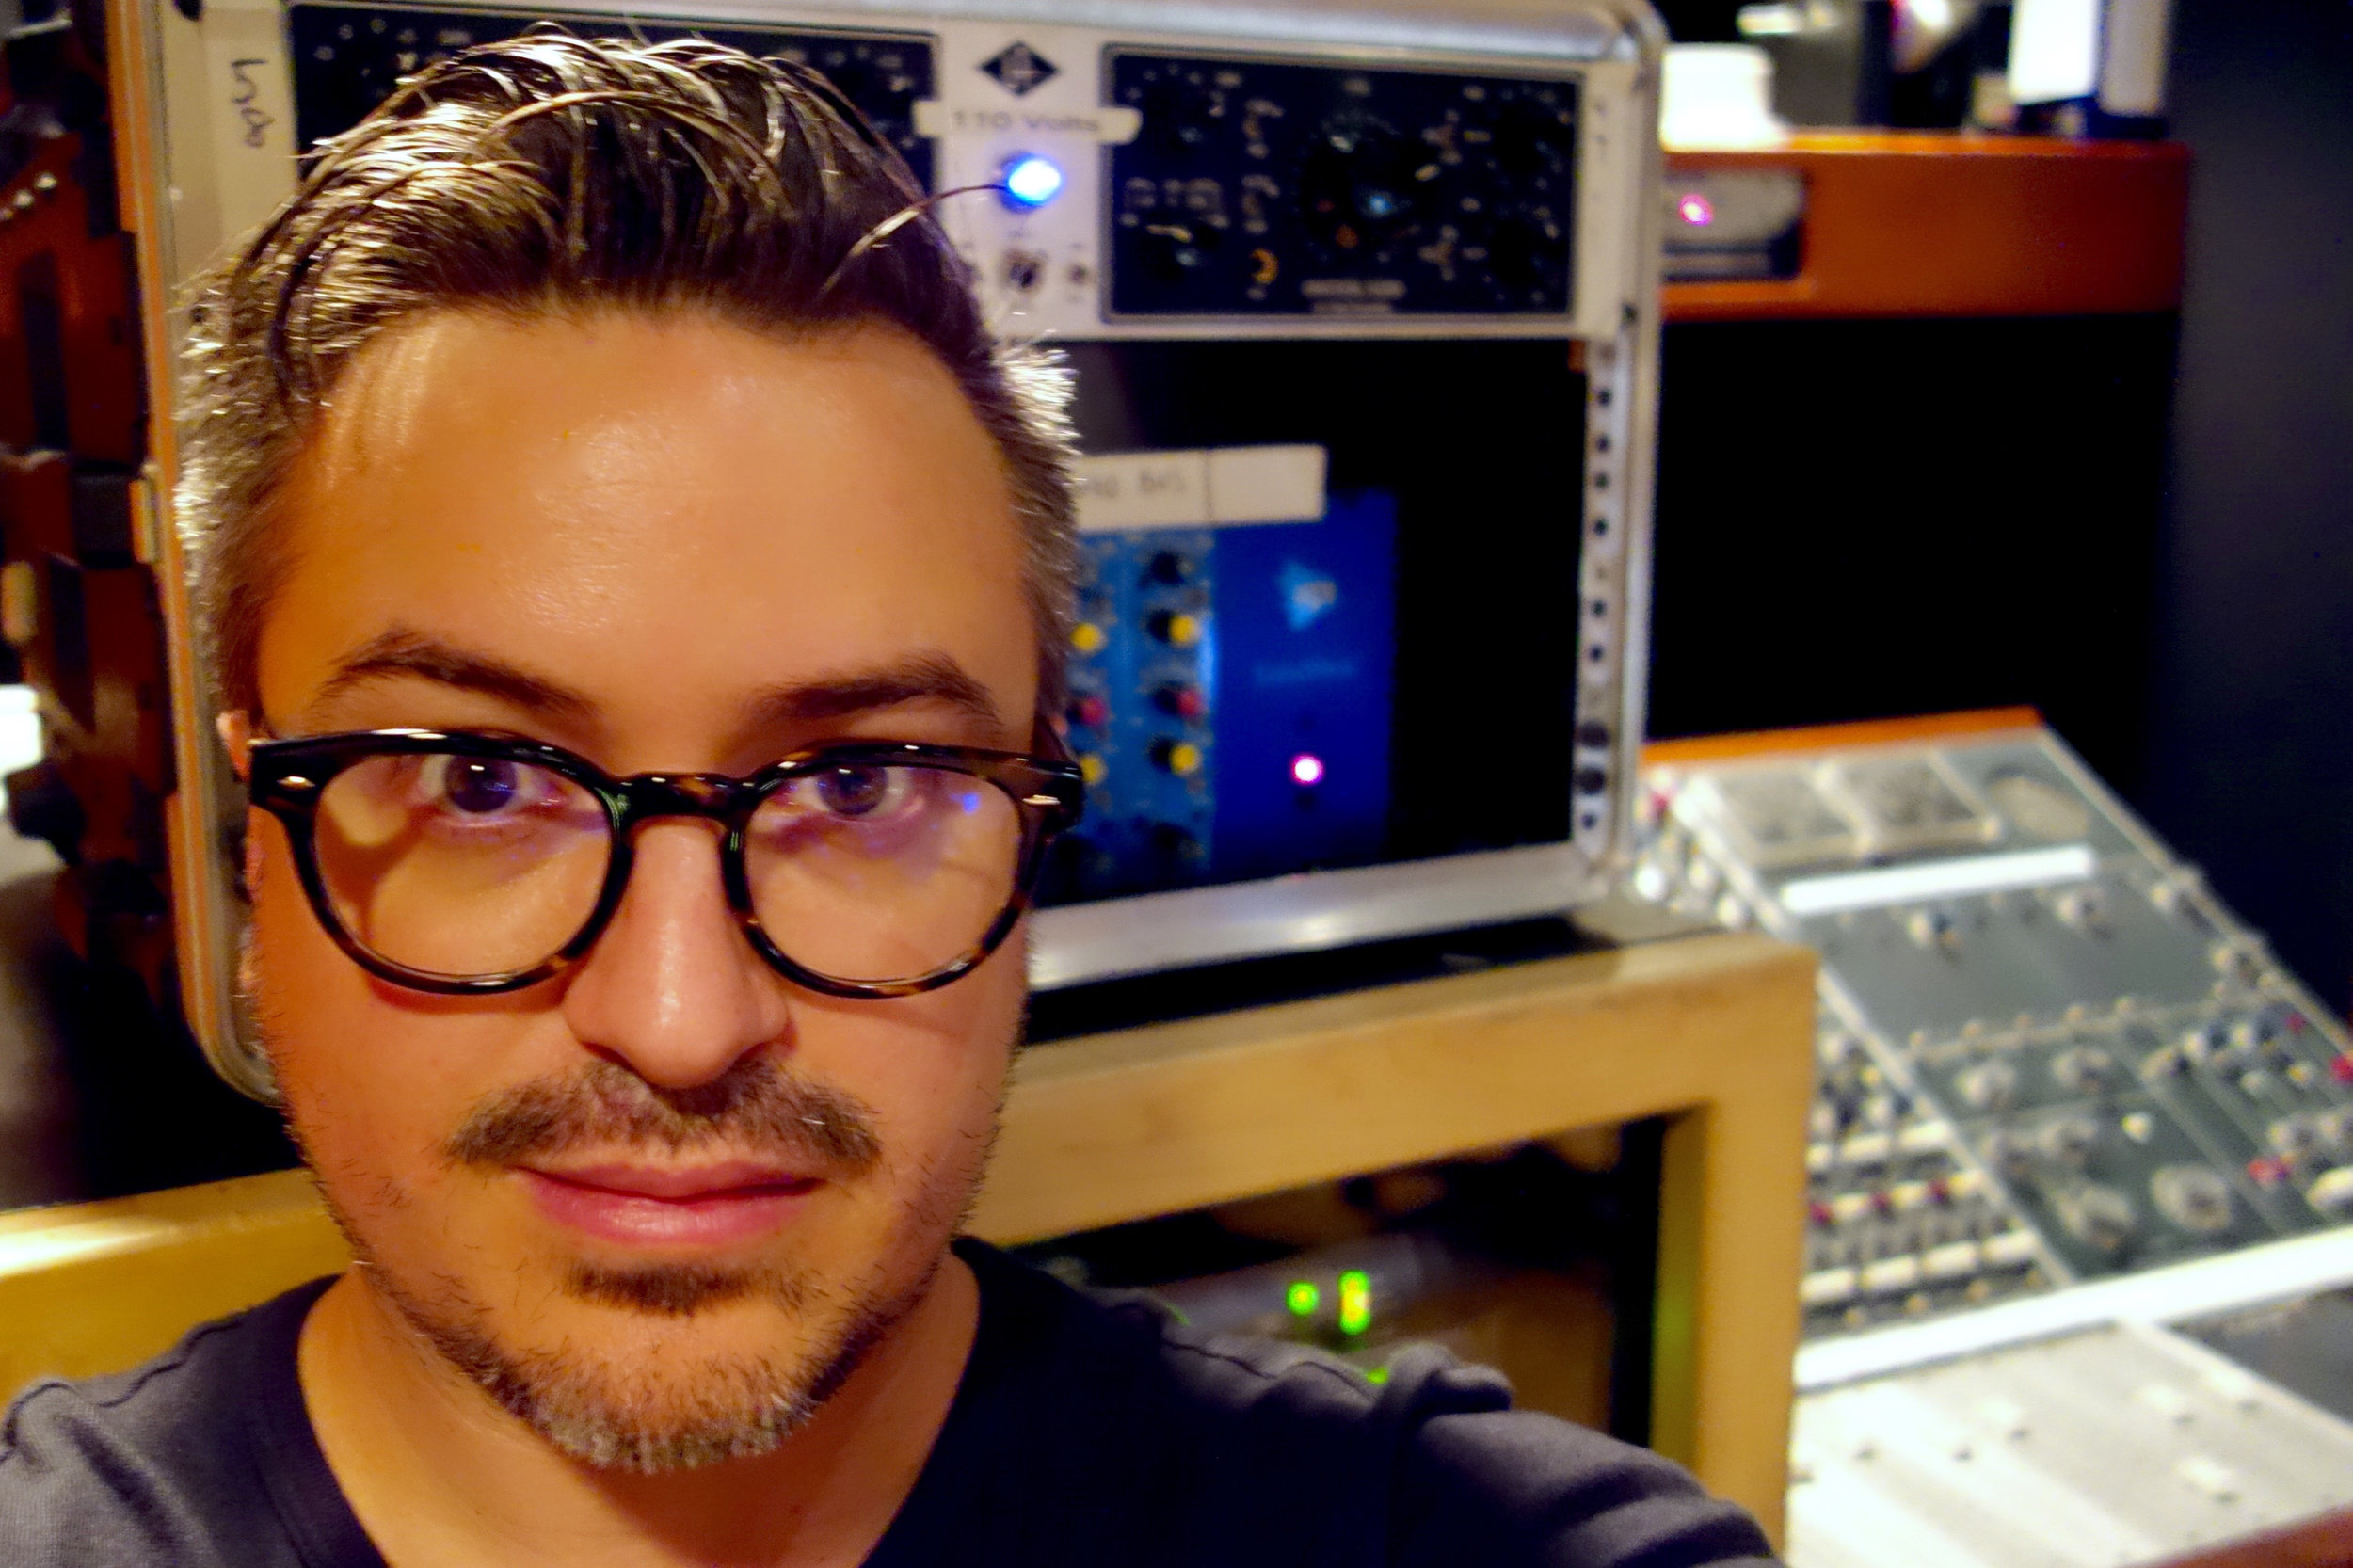 RIK SIMPSON : (producer, engineer) COLDPLAY, BRMC, JAY-Z